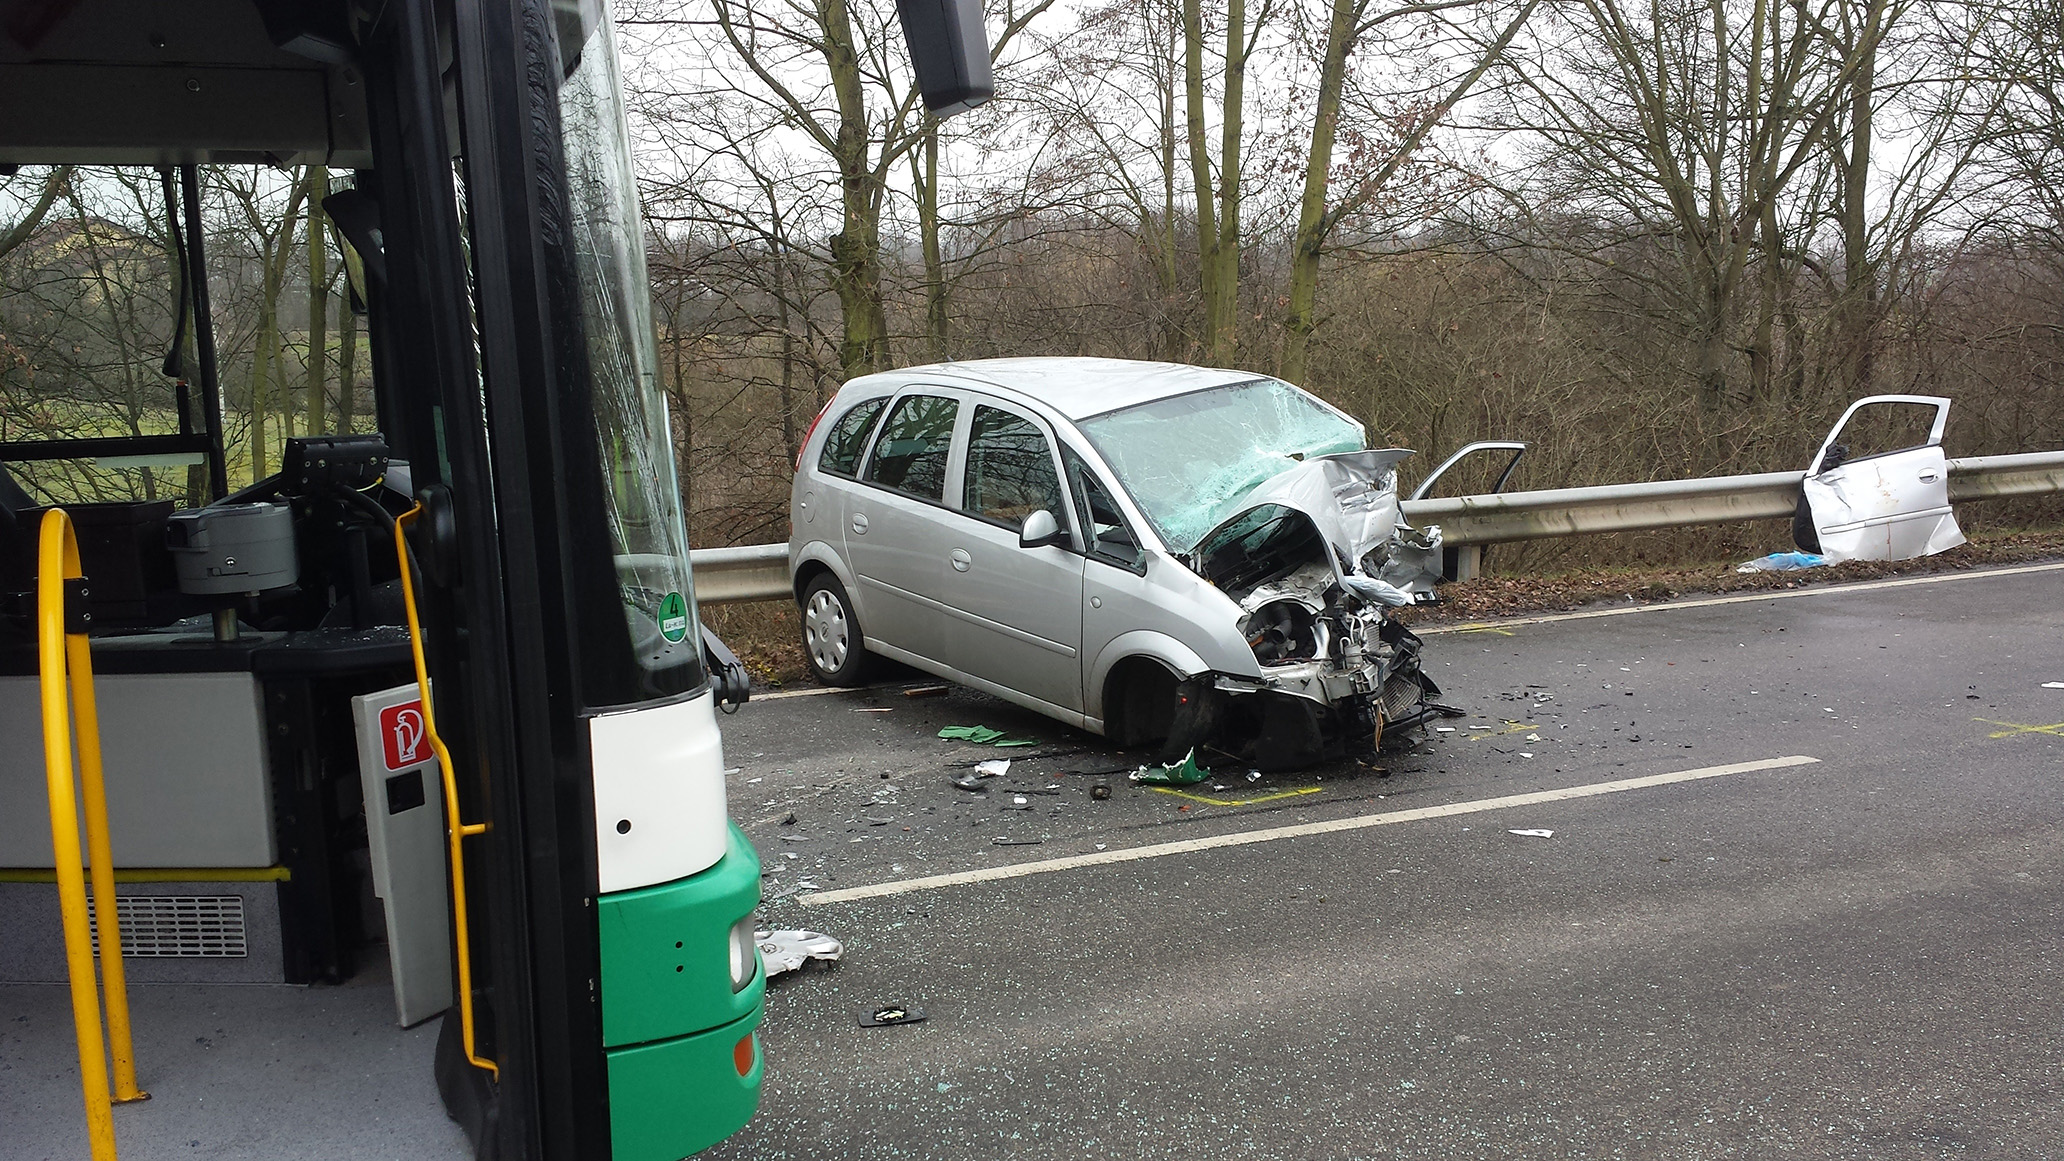 Buses, Trams and Trains Accidents, Whiplash on public transport - Personal Injury Claim Experts / No Win, No Fee / Accident Claims UK